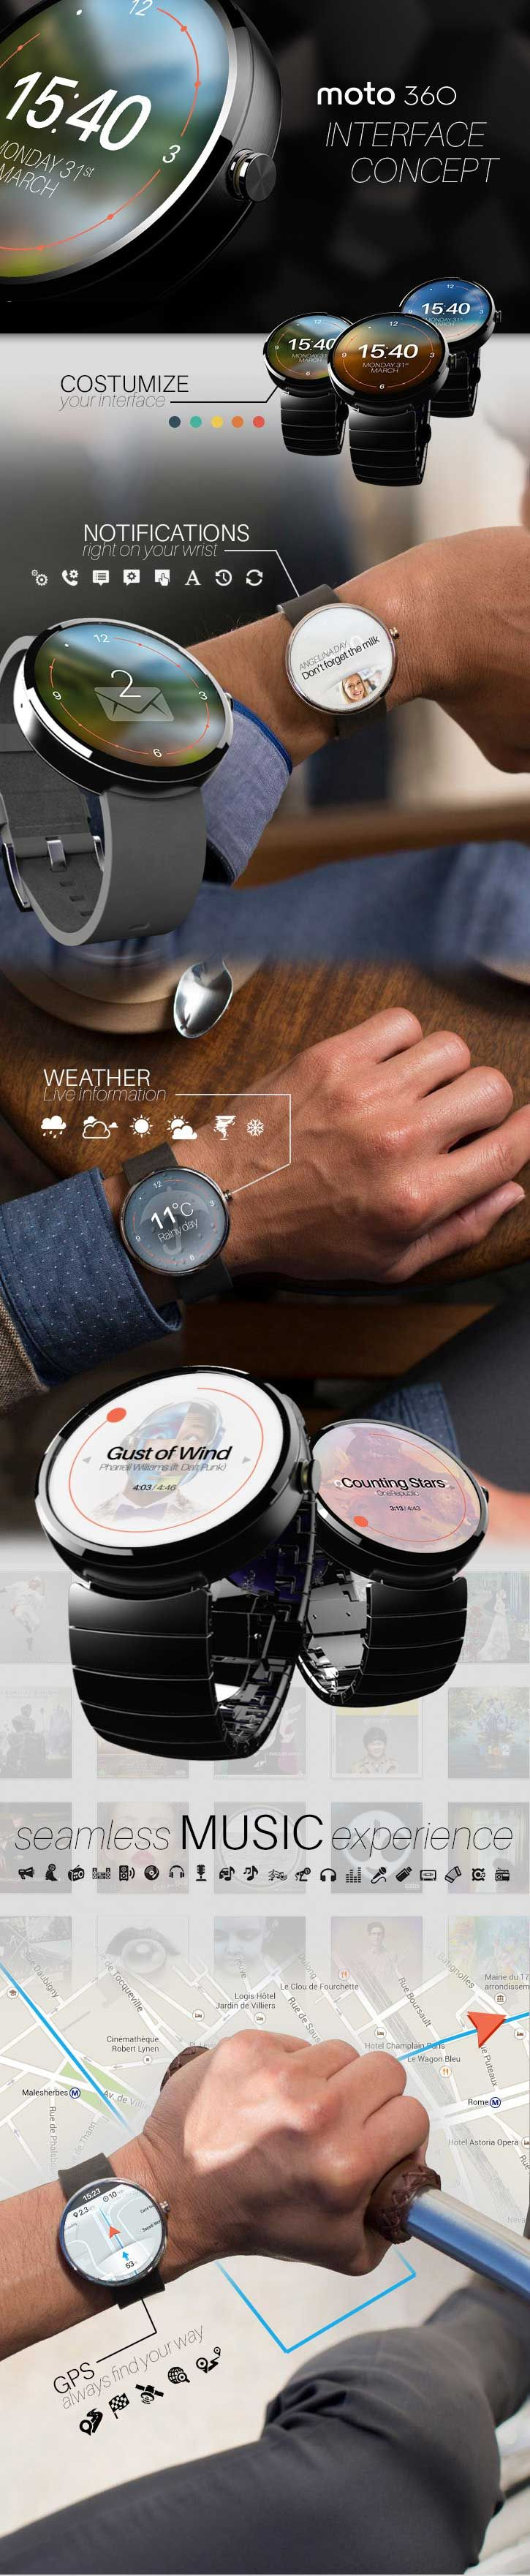 MOTO 360 UI Concept [Wearable Electronics: http://appstore/iotmonitor Smart Watches: http://appstore/iotmonitor